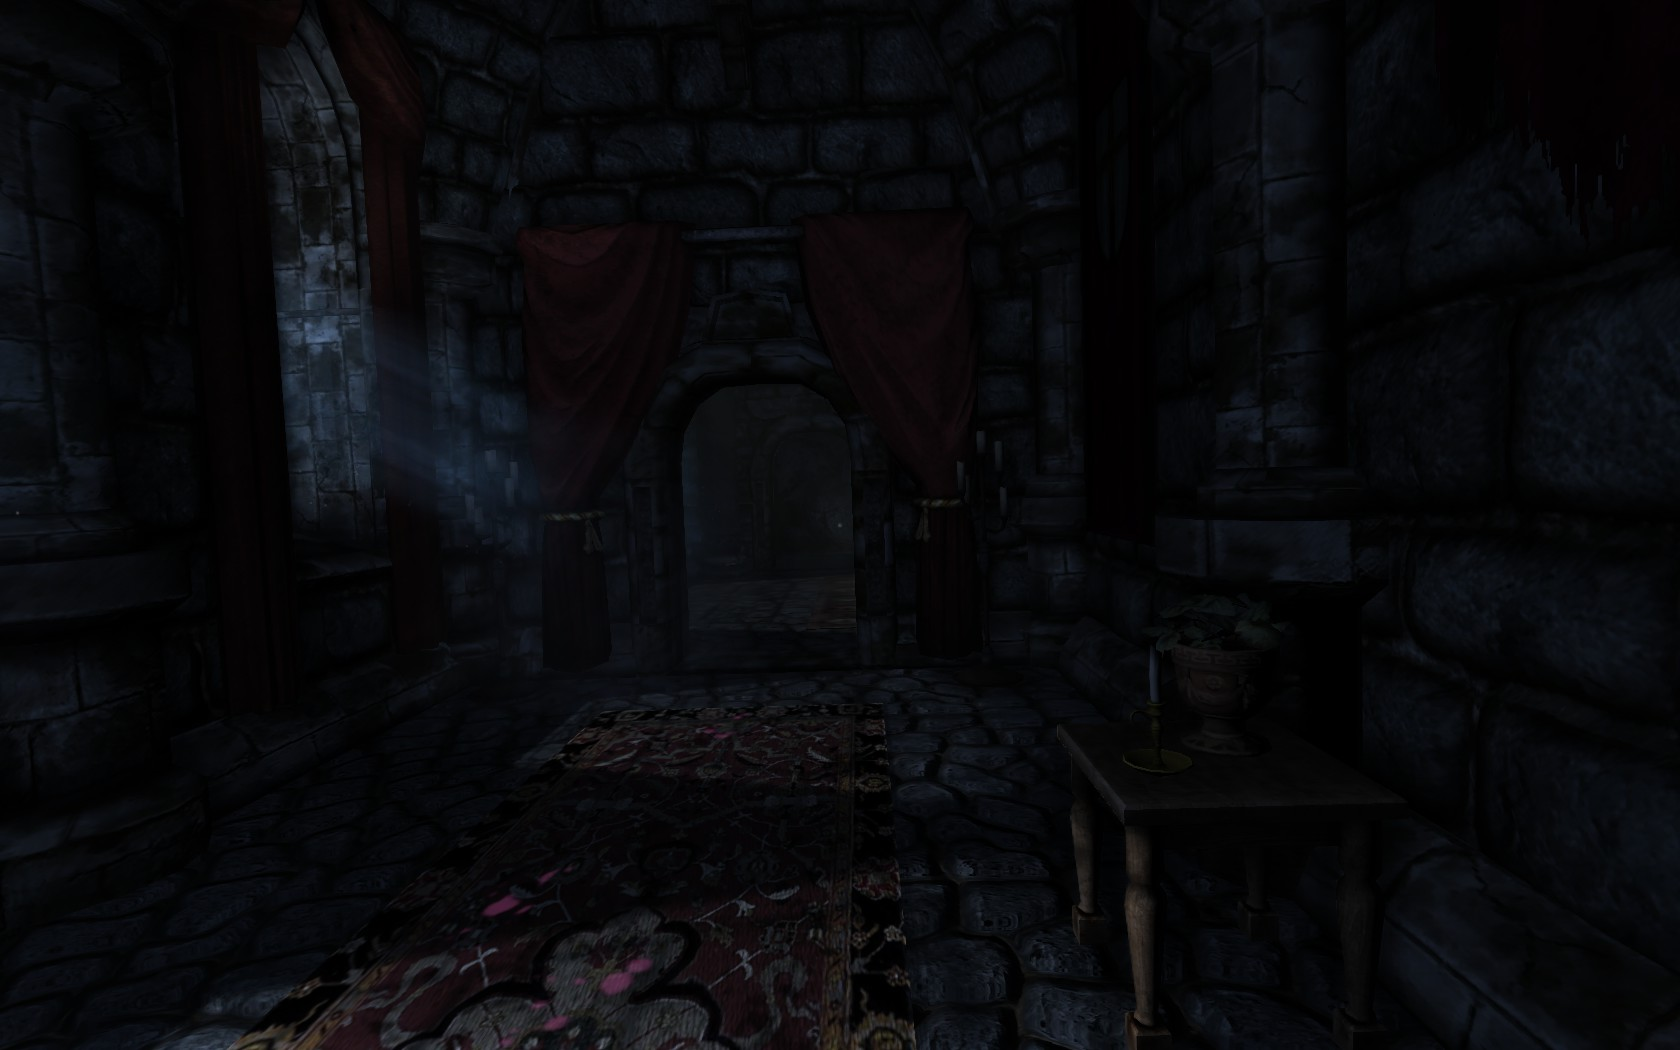 A dark hallway with stone tiles leaning ever so slightly to the left showcases Amnesia: The Dark Descent's unnerving camera angle.